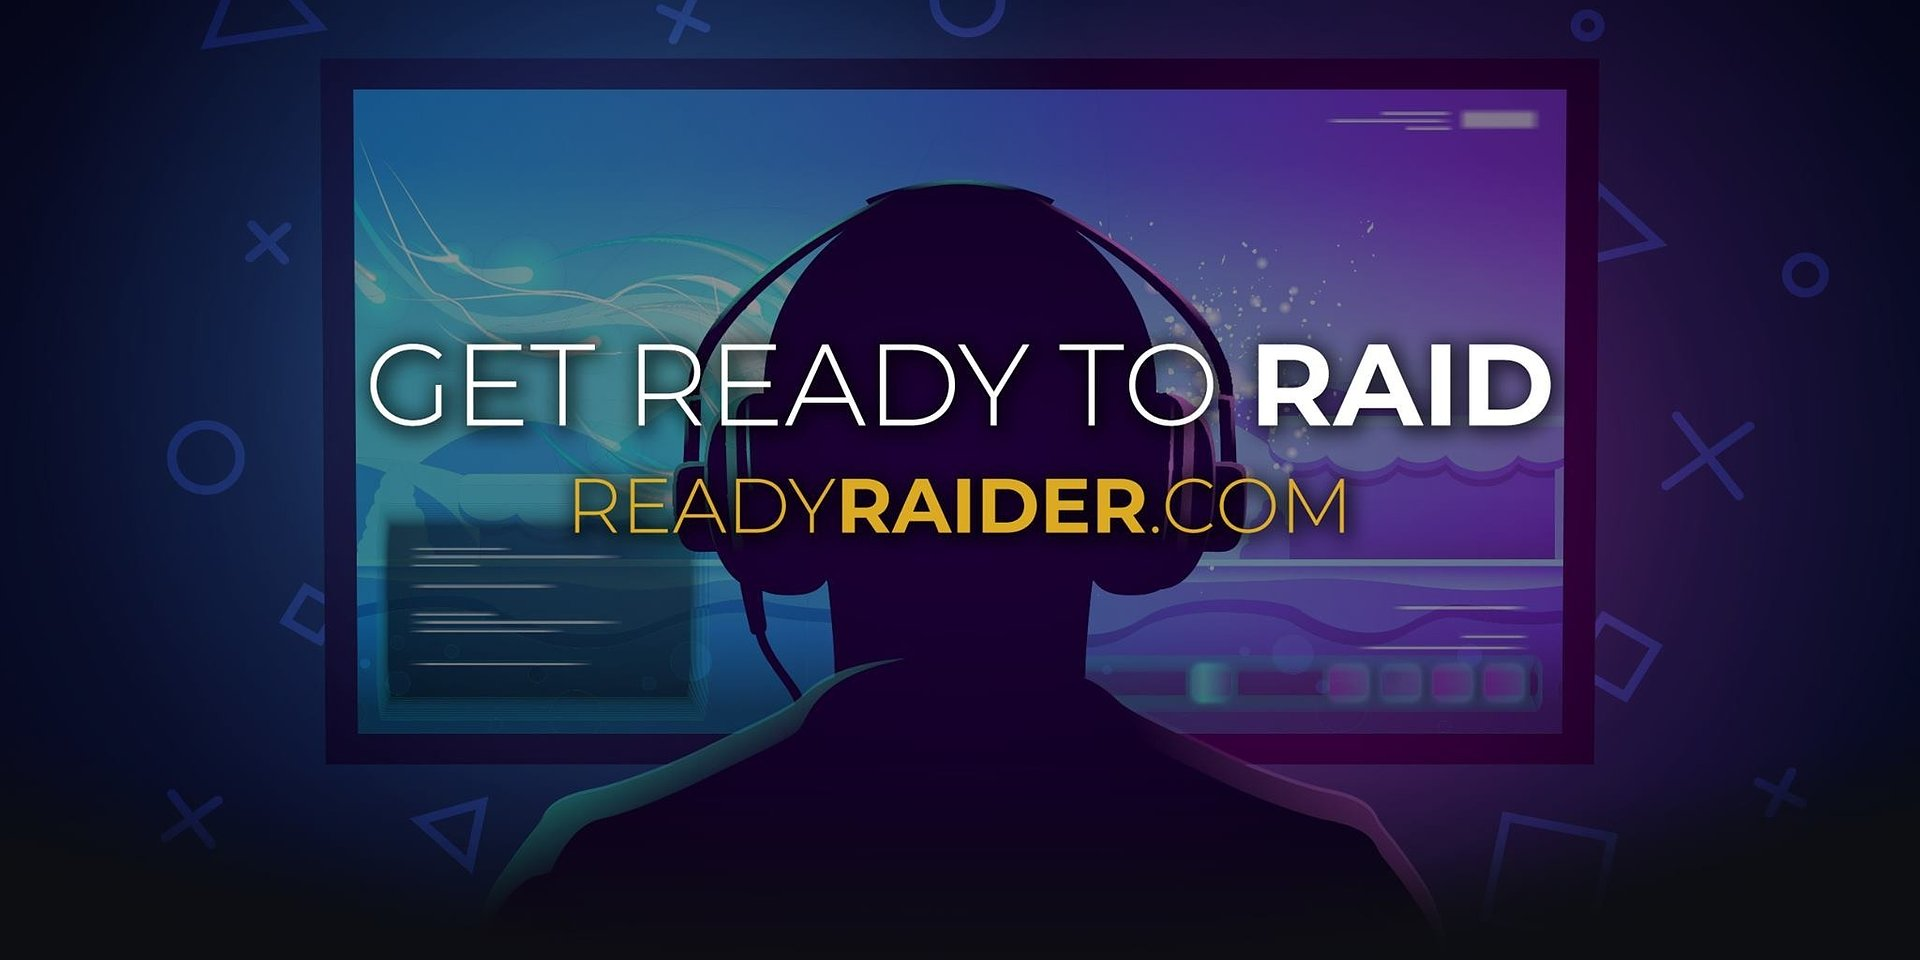 ReadyRaider eSports gaming platform partners with Dash as exclusive form of payment